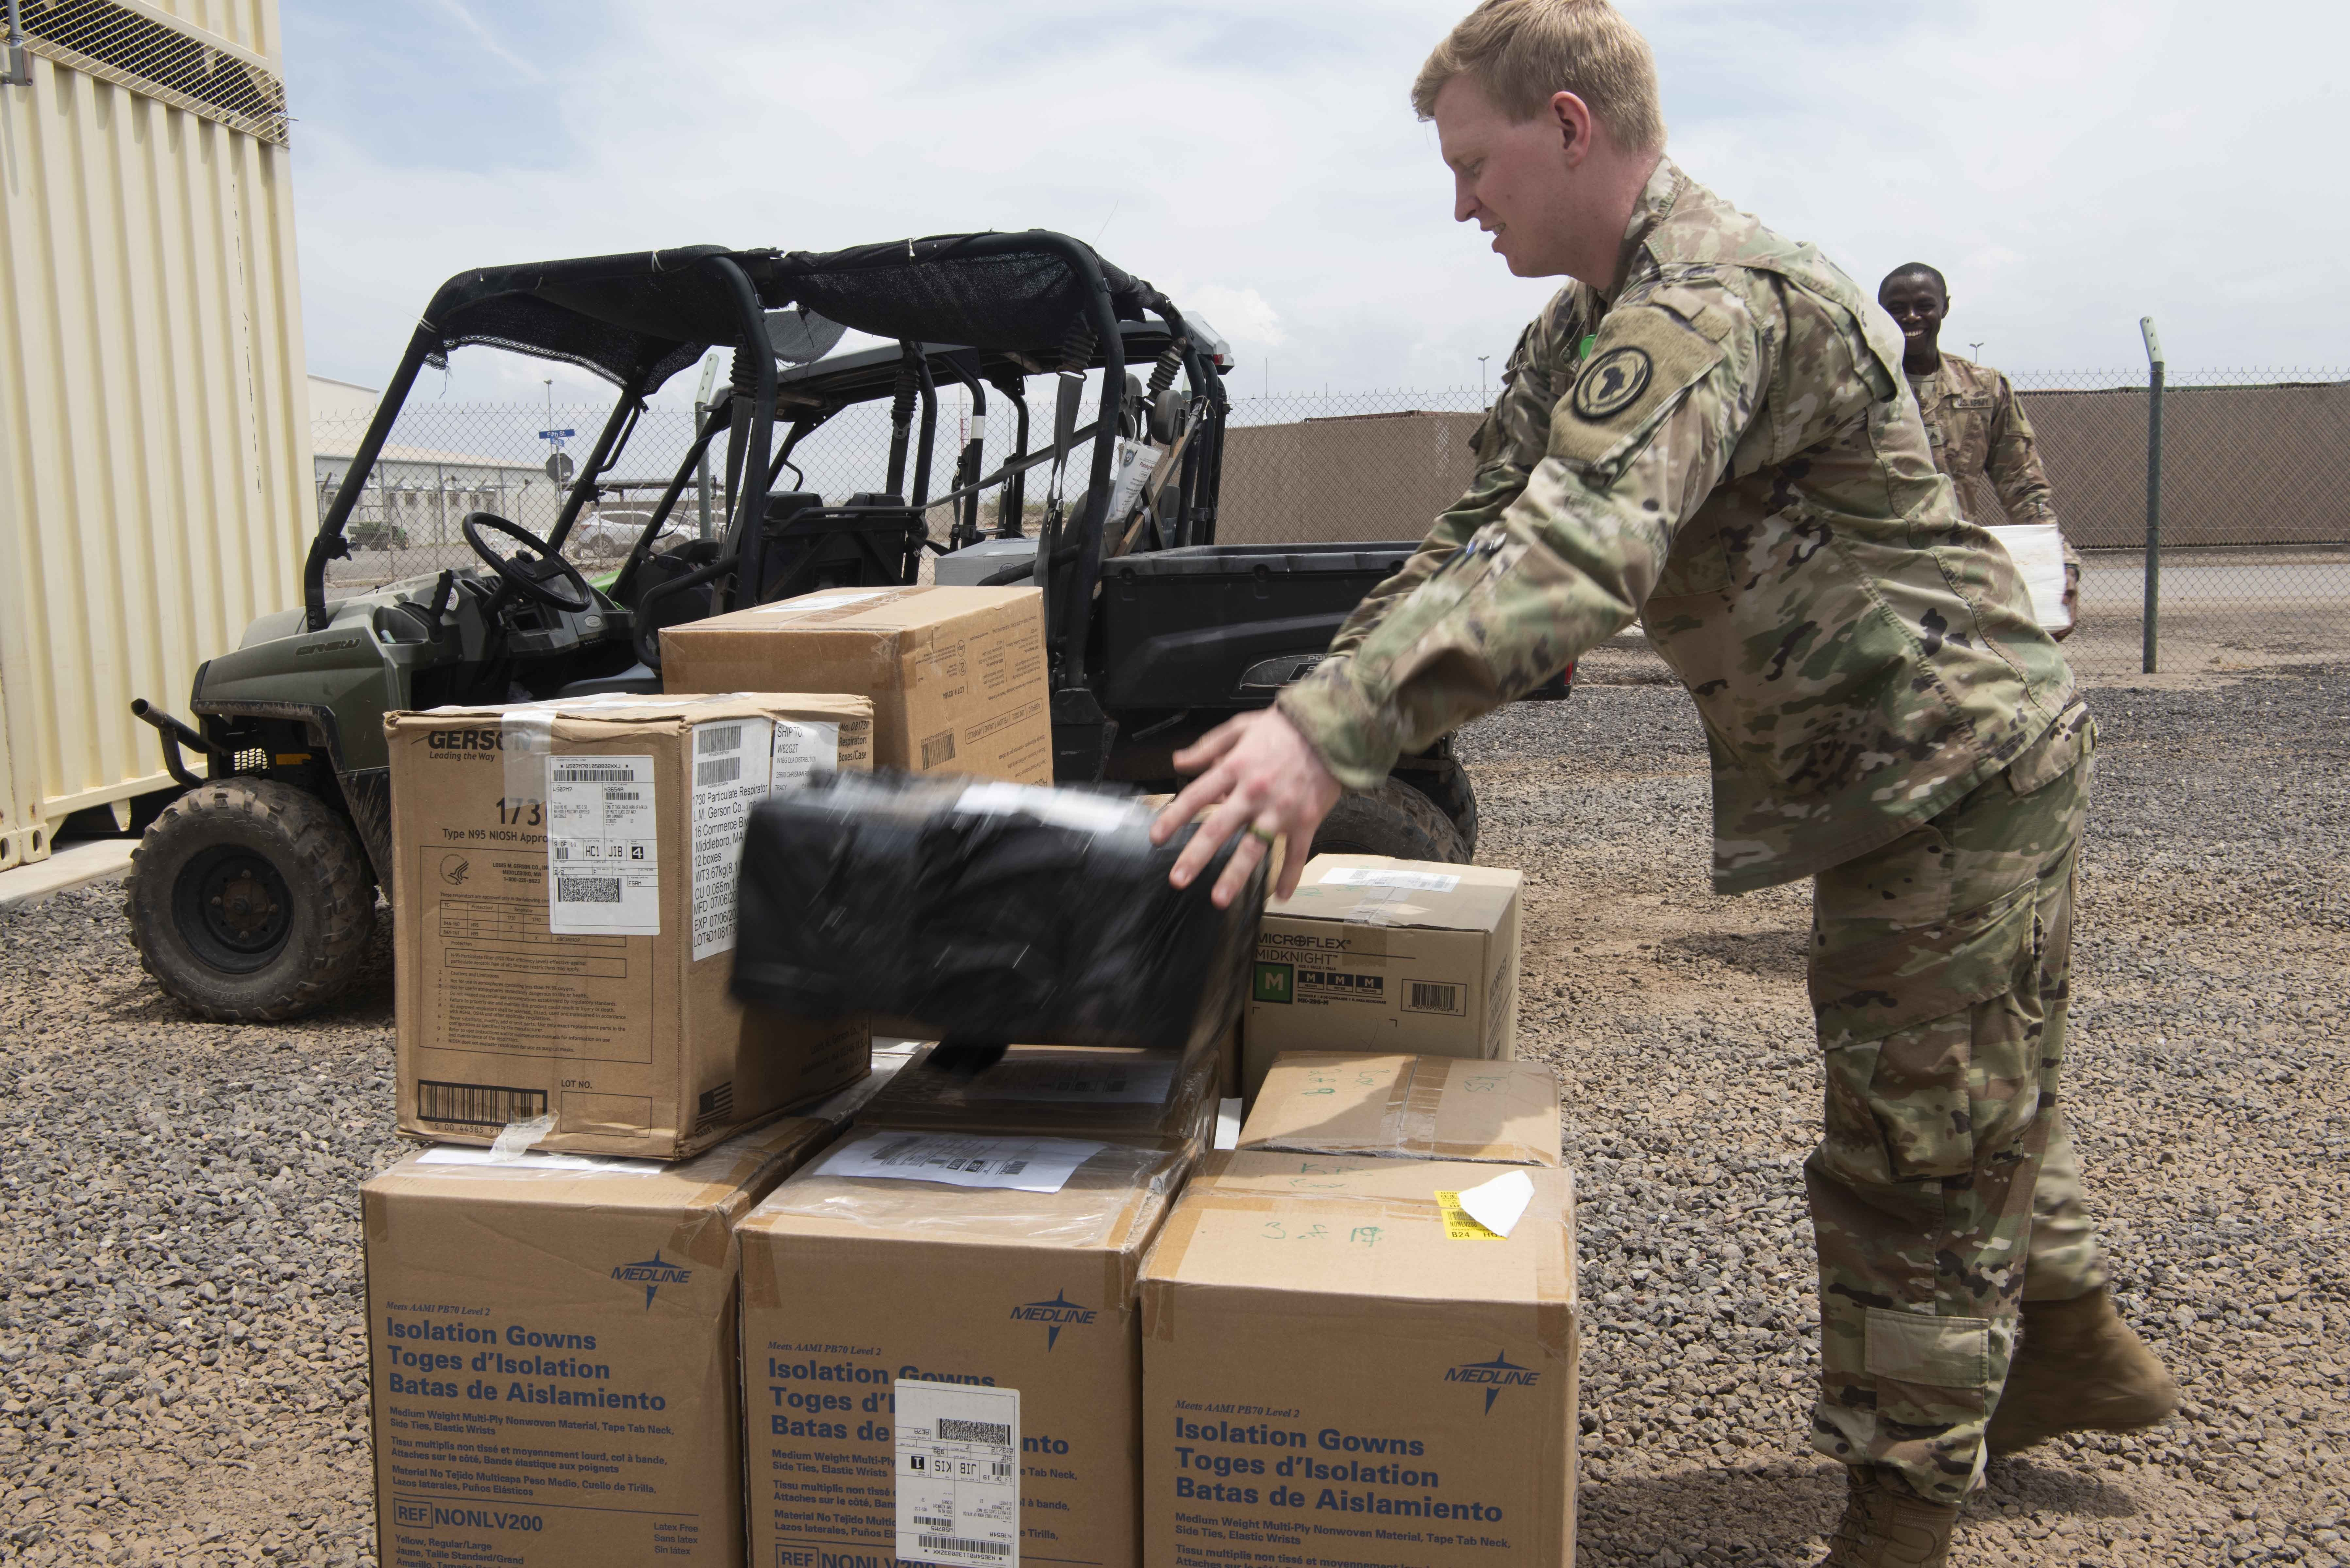 U.S. Army Capt. Ethan Betts, medical logistics (MEDLOG) officer for Combined Joint Task Force-Horn of Africa (CJTF-HOA), places a medical sticker on a box of medical supplies at Camp Lemonnier, Djibouti, Apr. 24, 2020. CJTF-HOA's MEDLOG is responsible for distributing supplies and healthcare equipment, whether it be a computer system, a bandage, narcotics or PPE, to medical providers anywhere in East Africa. (U.S. Air Force photo by Tech. Sgt. Ashley Nicole Taylor)